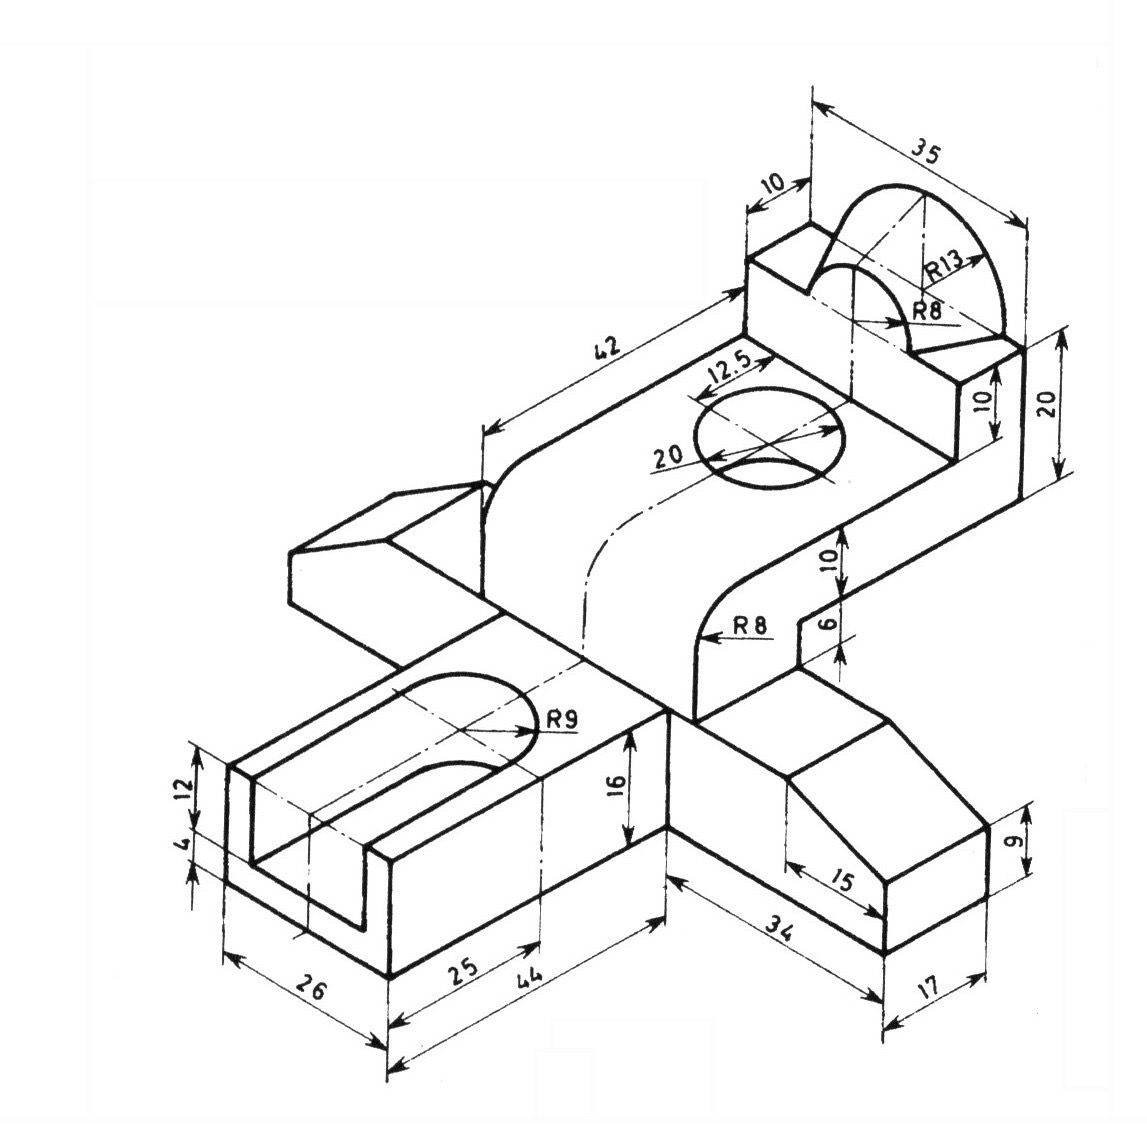 Pin by Leland S Pike on Ttrg Autocad isometric drawing